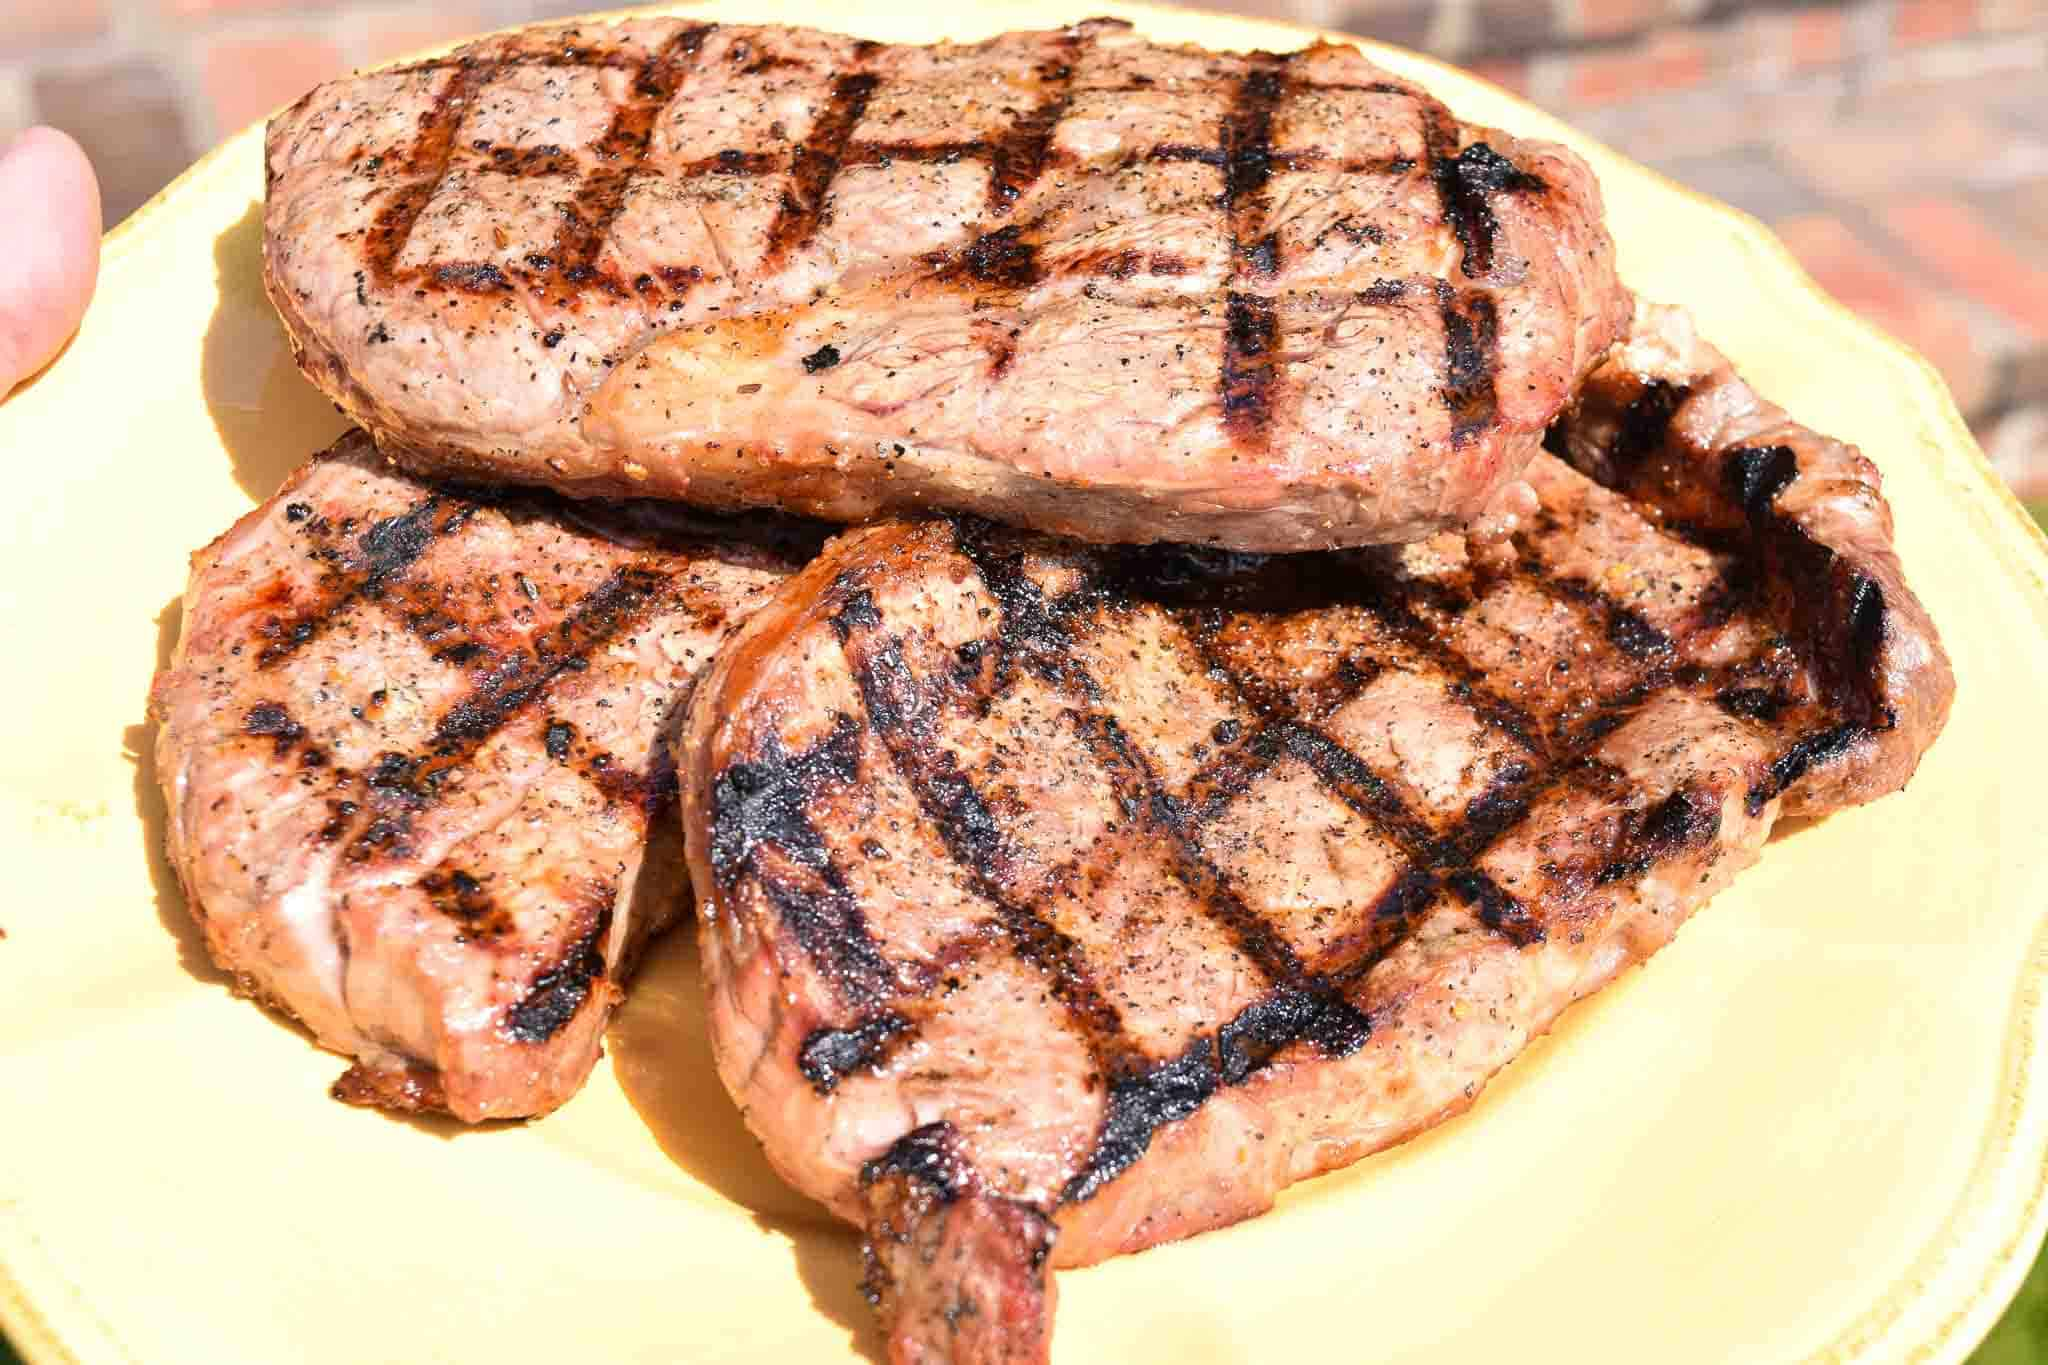 Steaks stacked up on yellow plate ready to be served